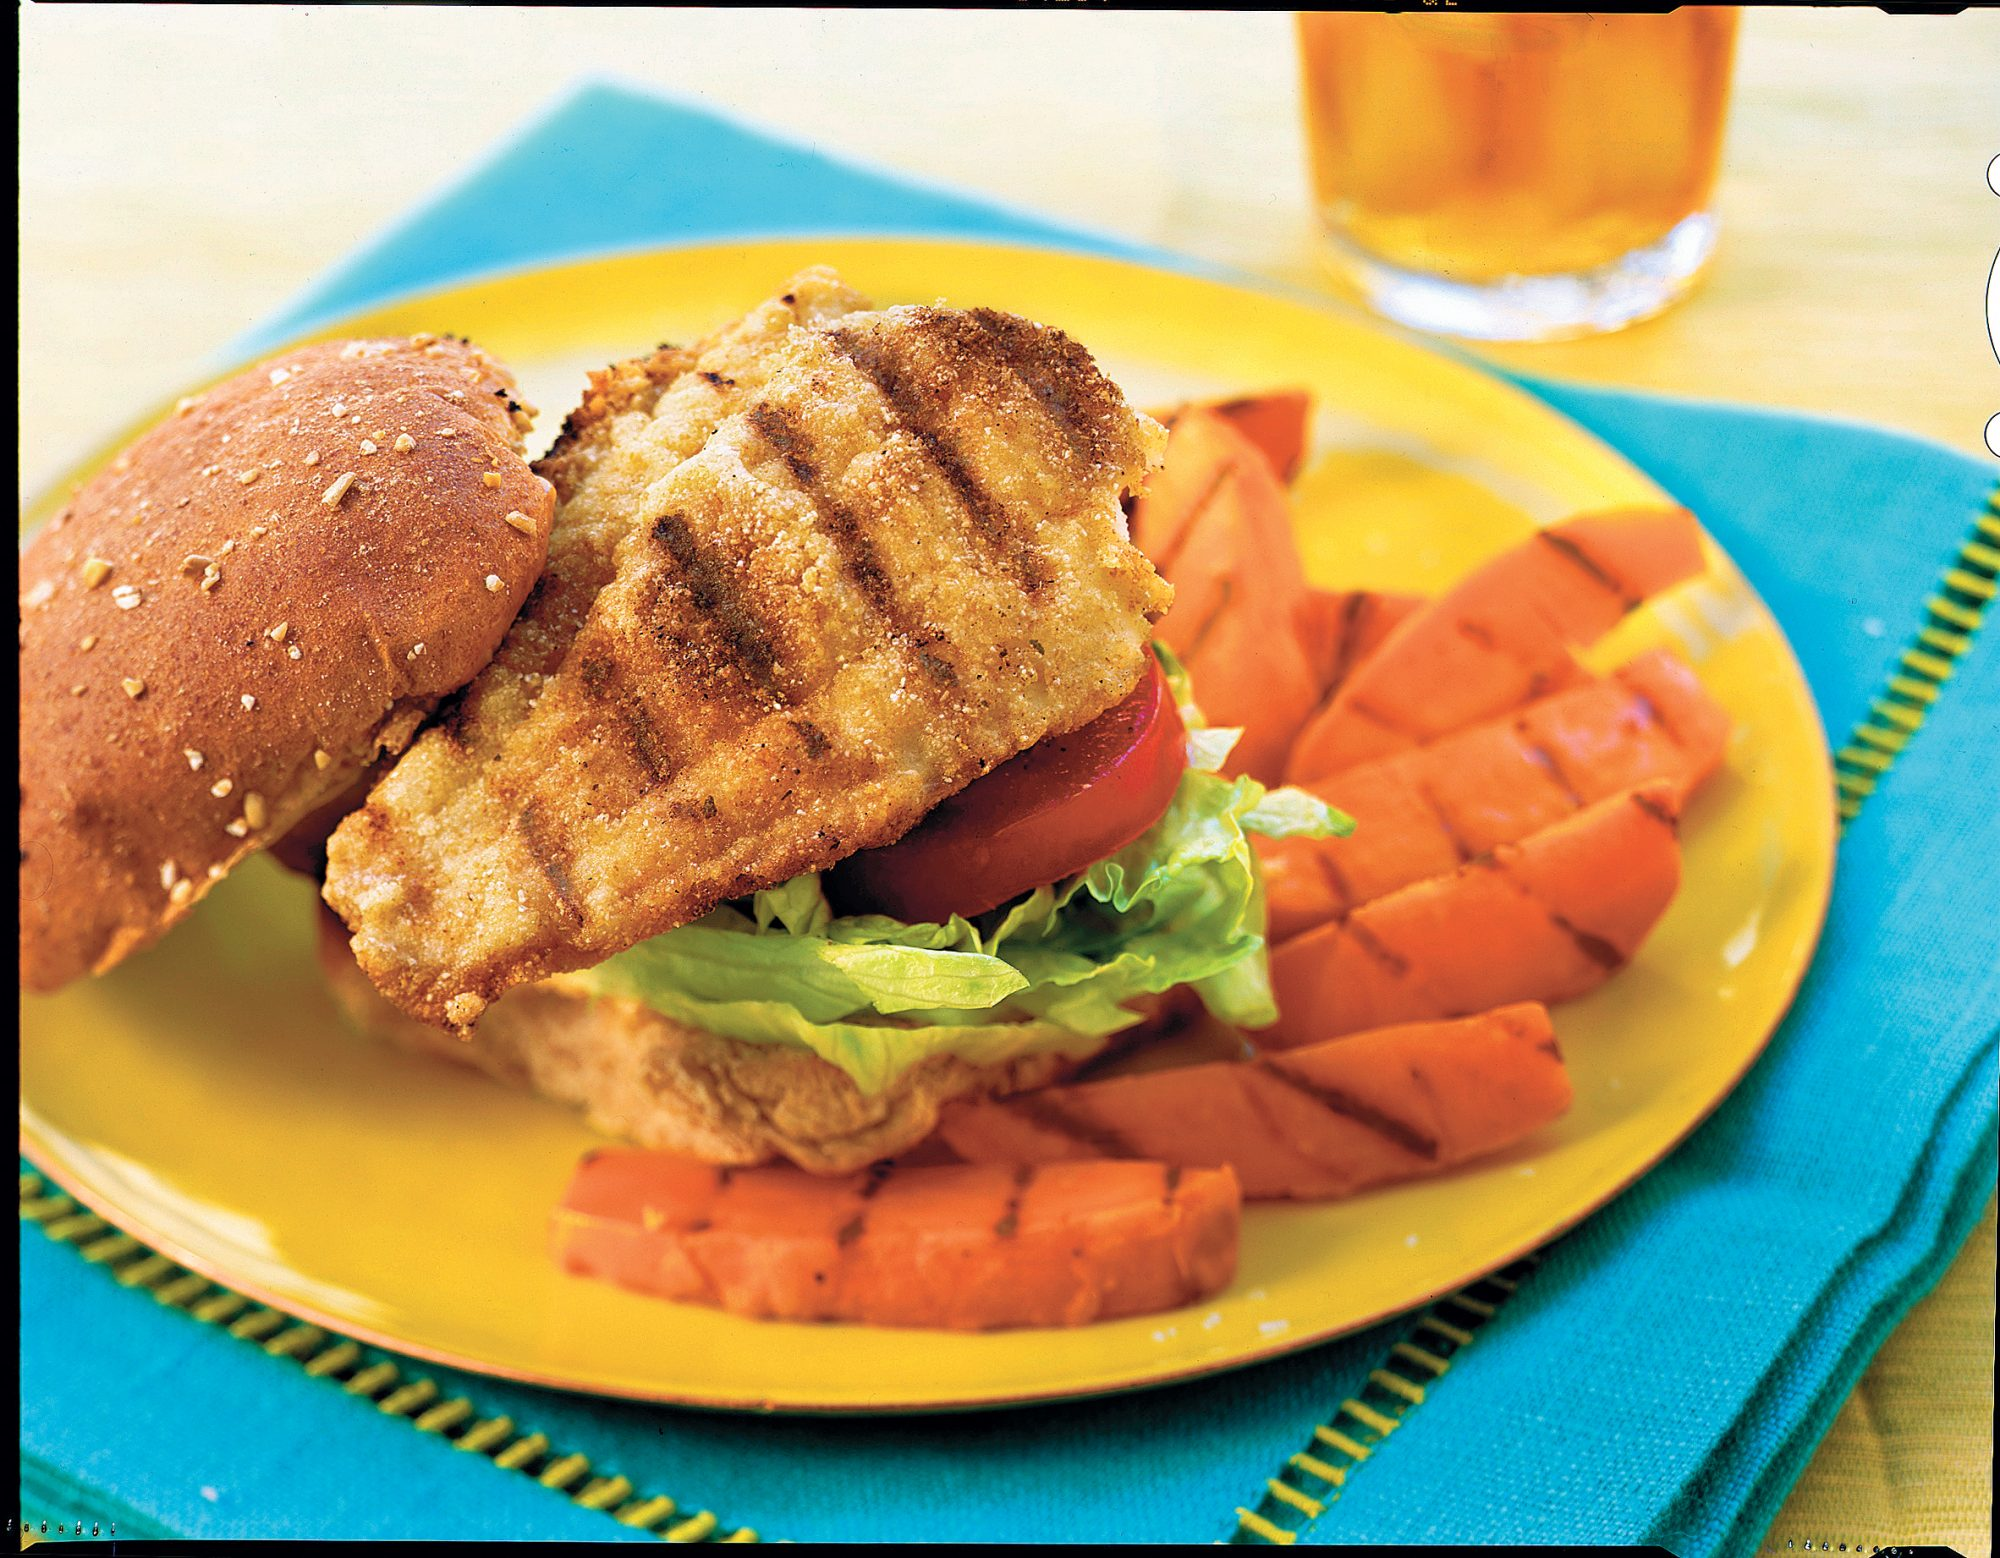 Grilled Burgers and Sanwiches Recipes: Cumin-Dusted Catfish Sandwiches